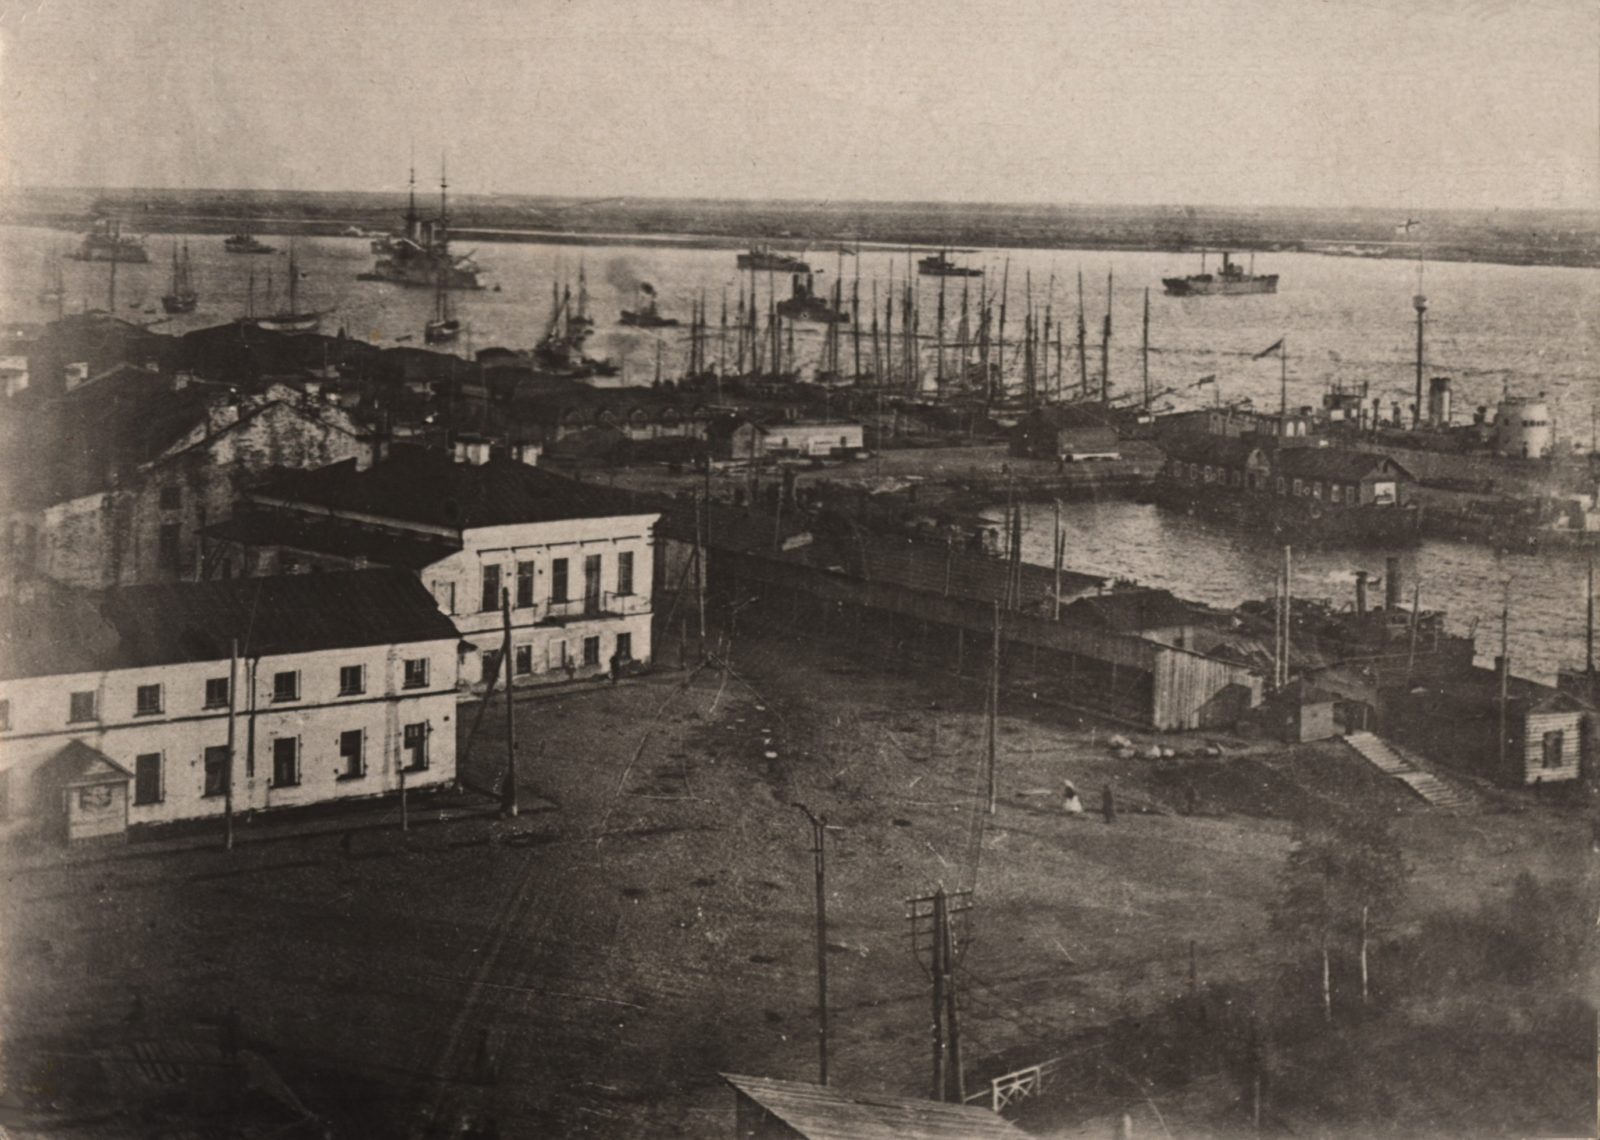 Arkhangelsk Port with navy ships (Archangel)